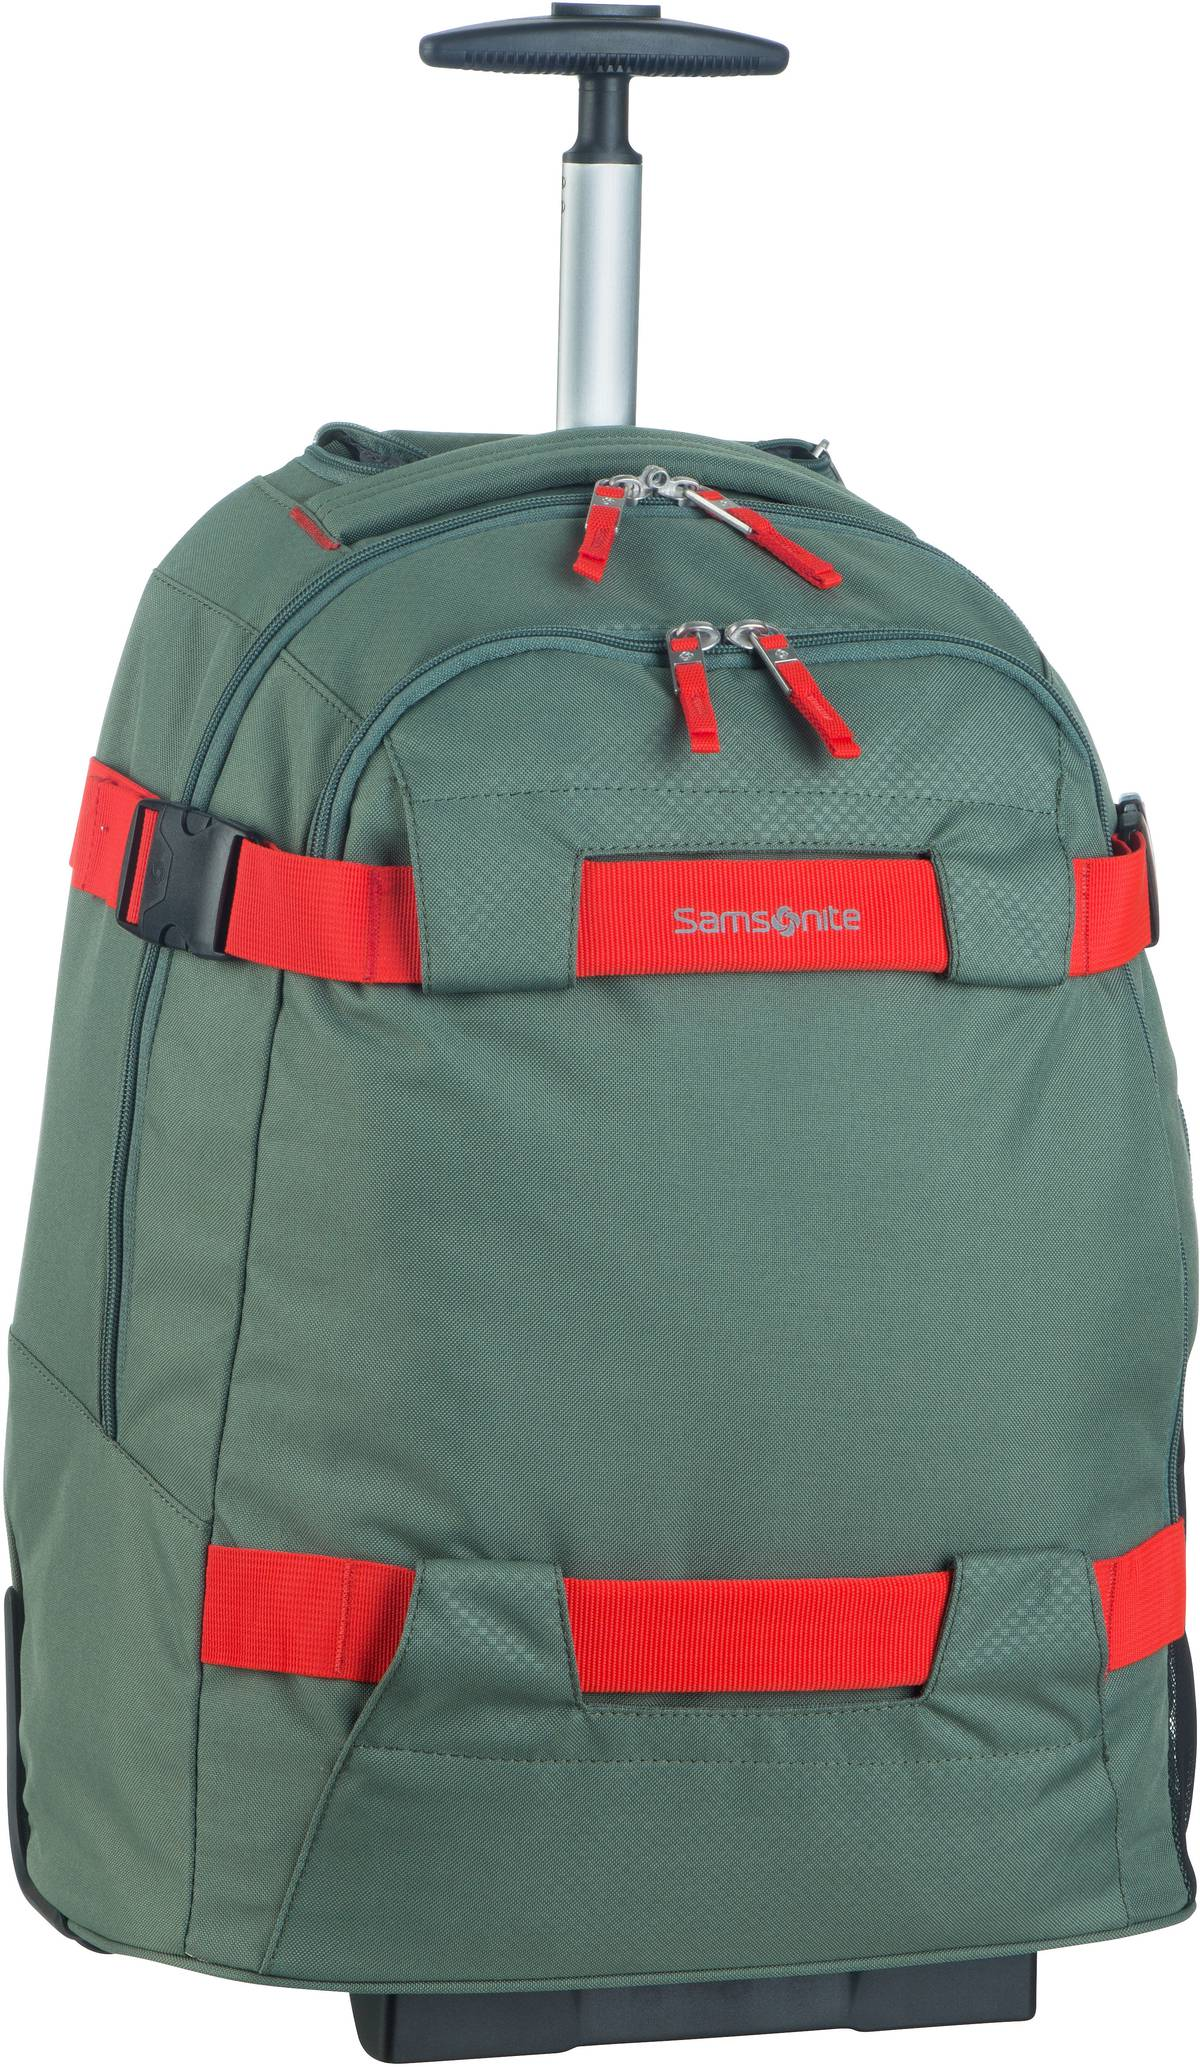 Rucksack-Trolley Sonora Laptop Backpack/Wh 55 Thyme Green (30 Liter)